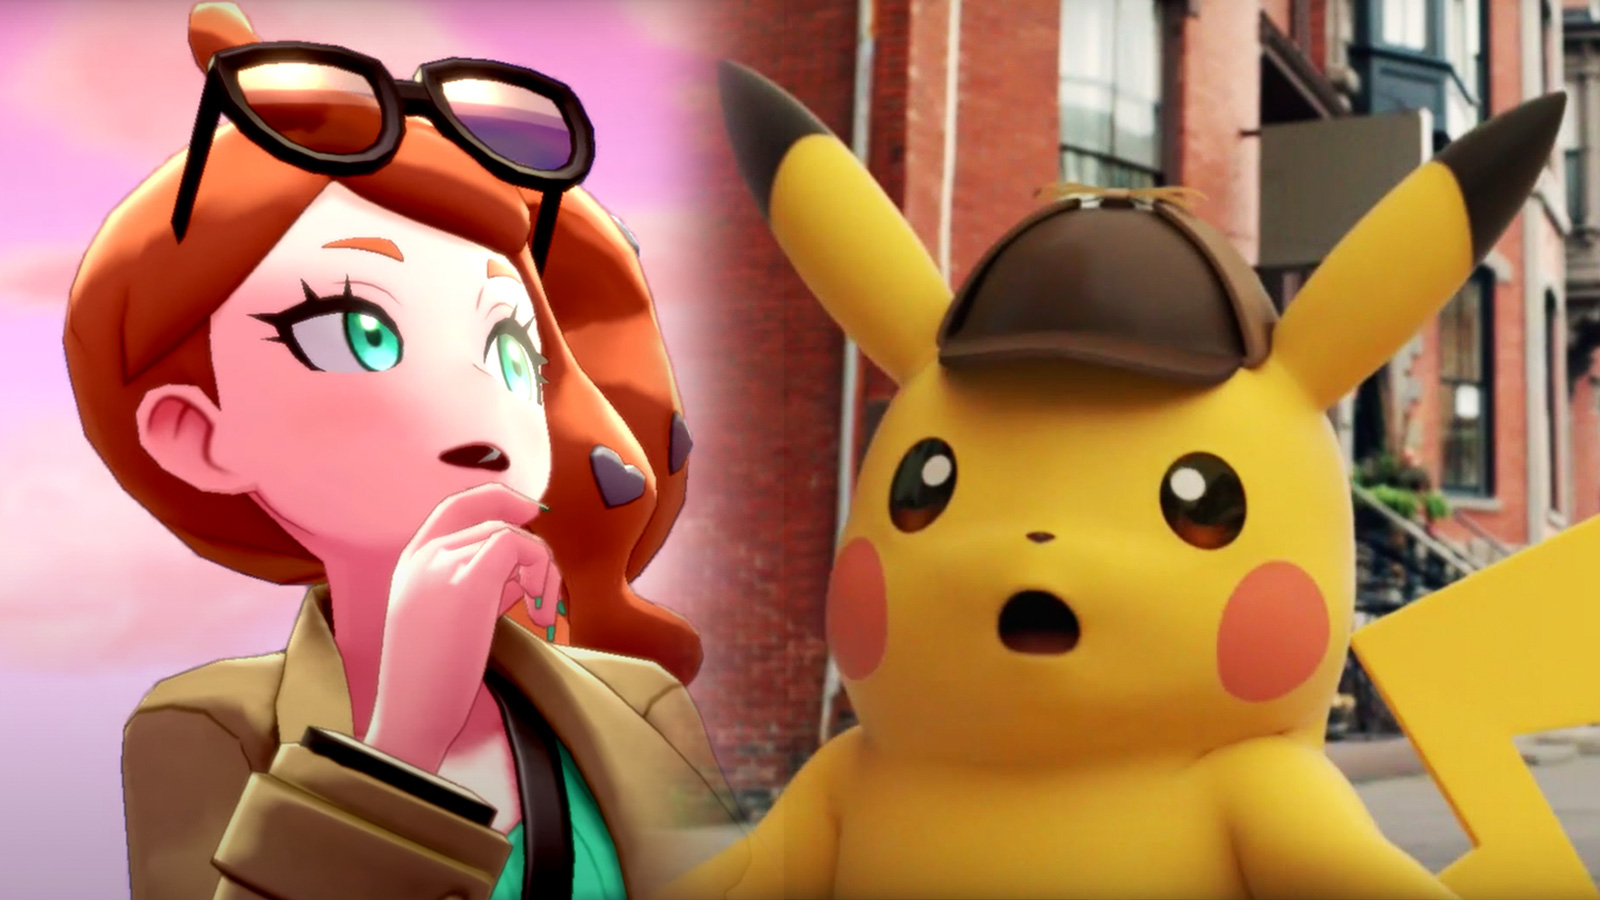 Screenshot of Sonia from Pokemon Sword & Shield next to Detective Pikachu.